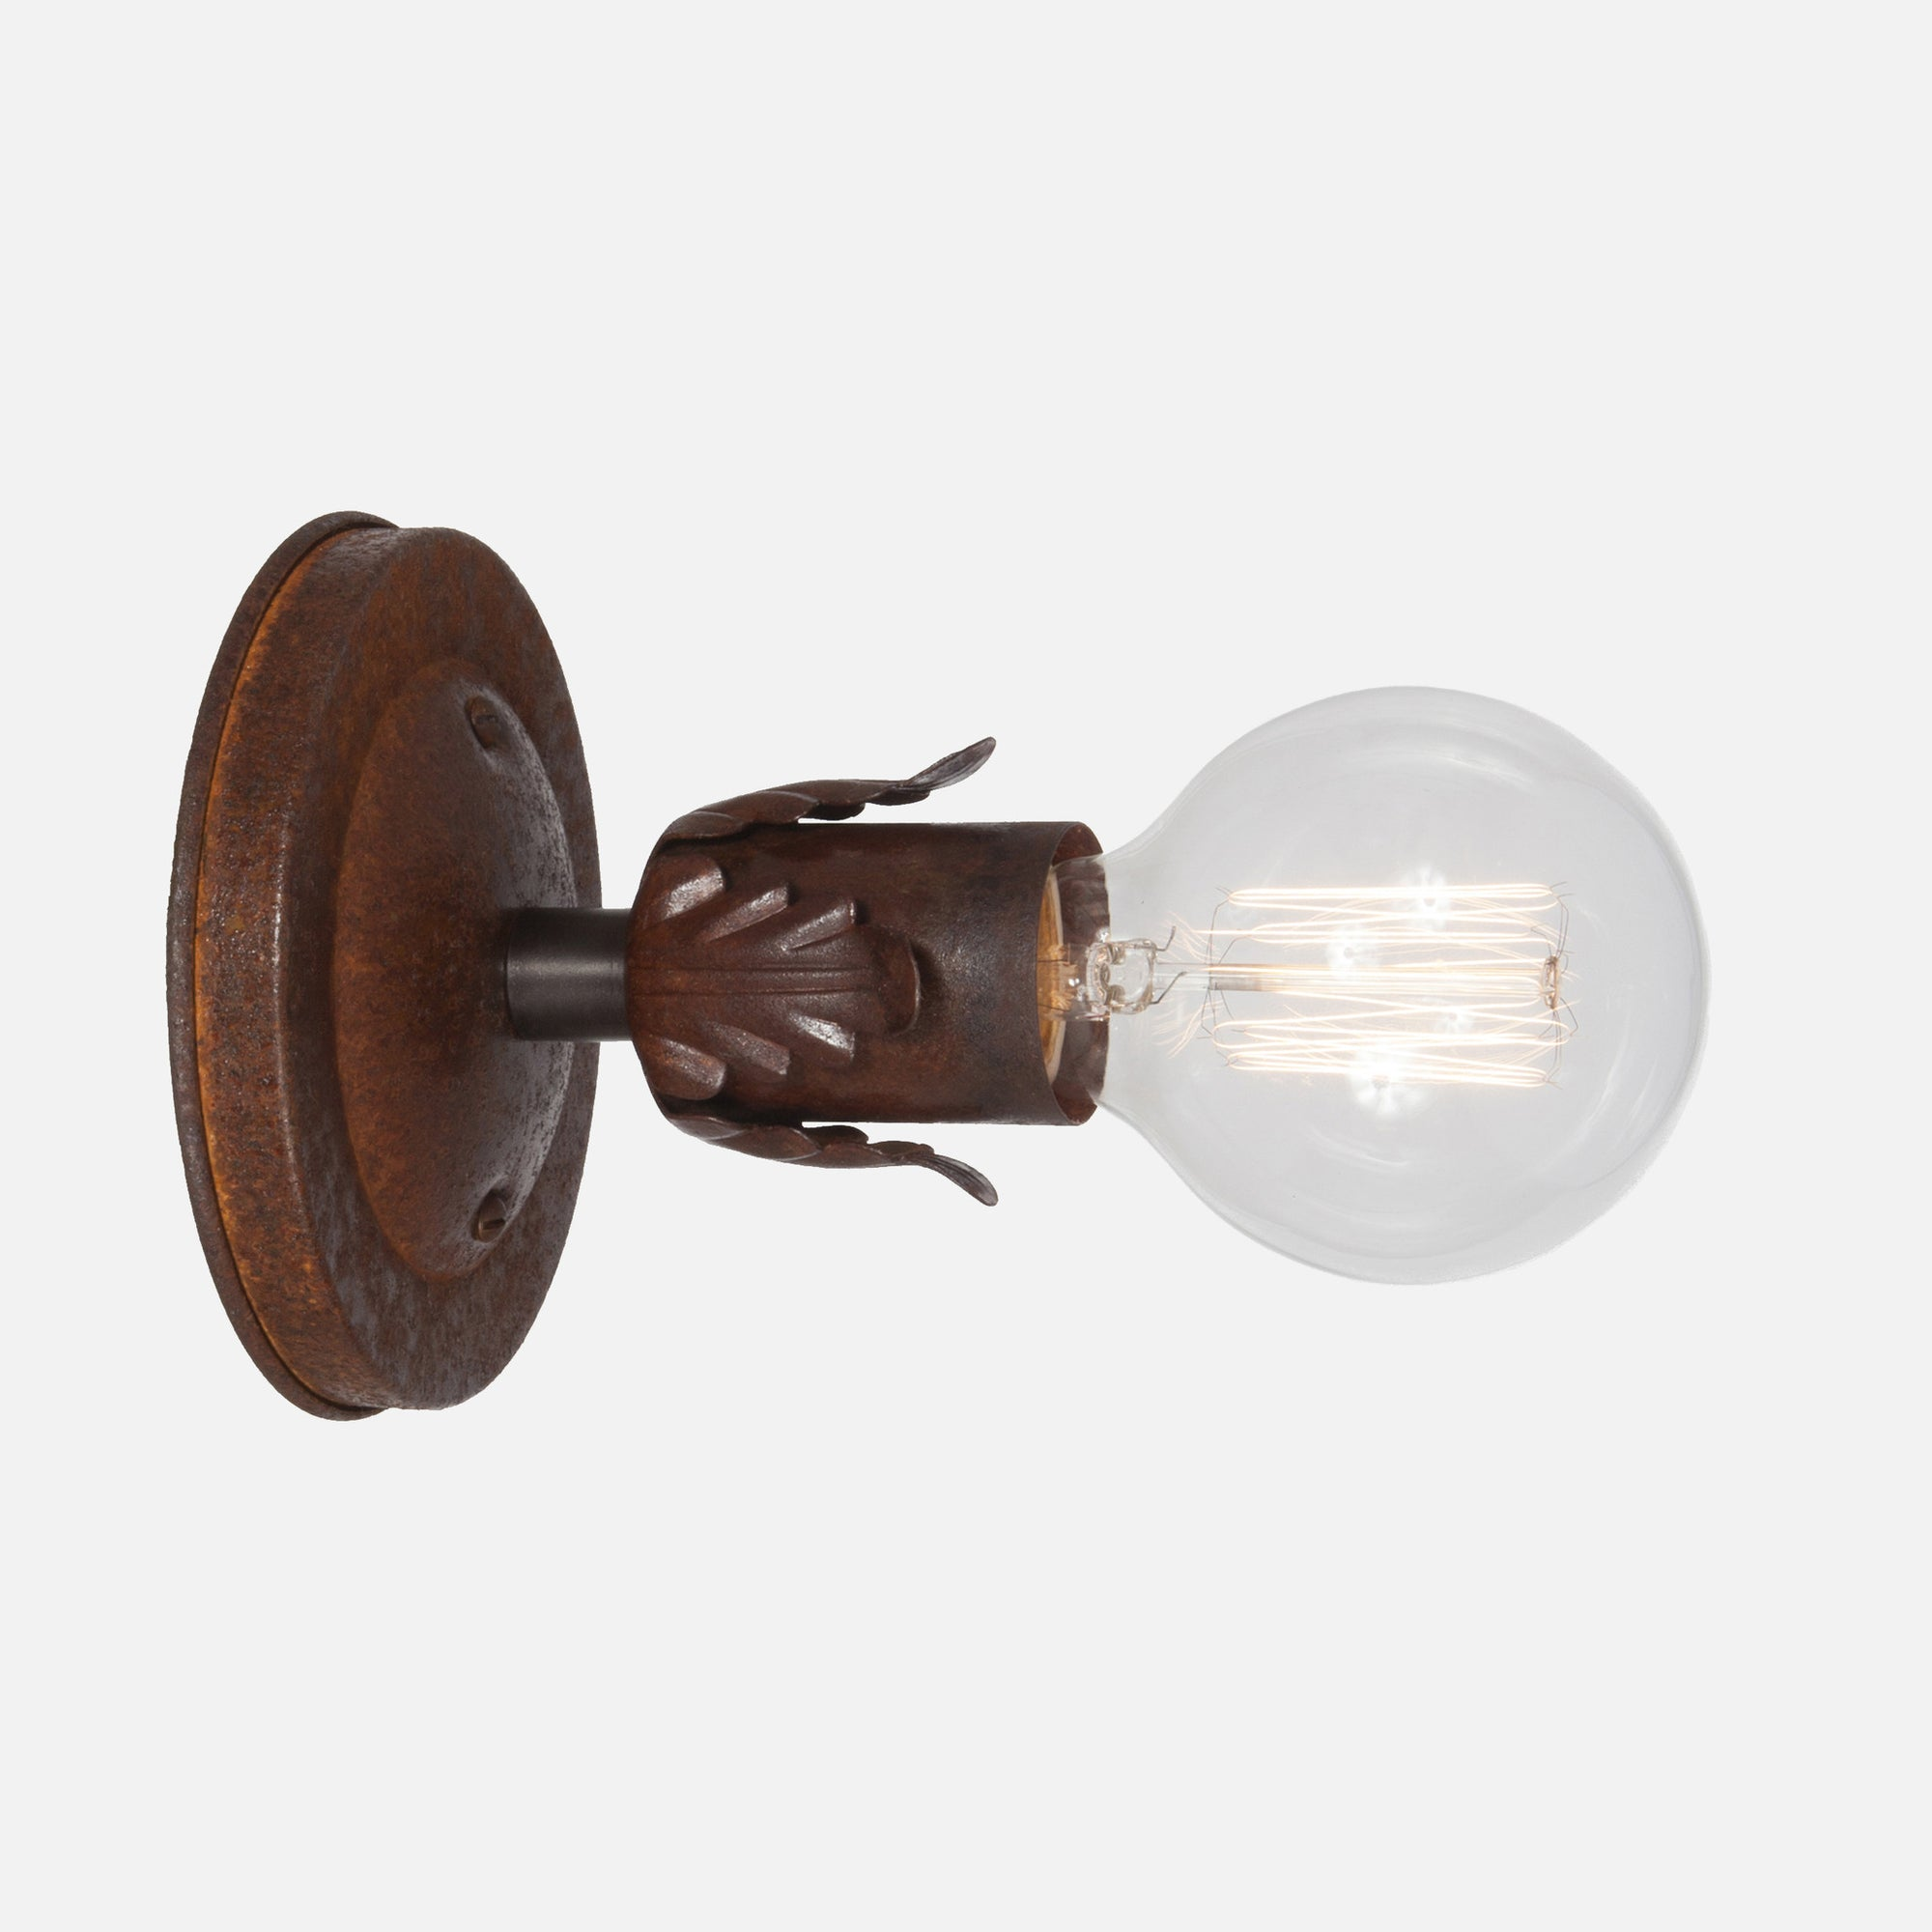 Fleurette Wall Sconce - Natural Rust